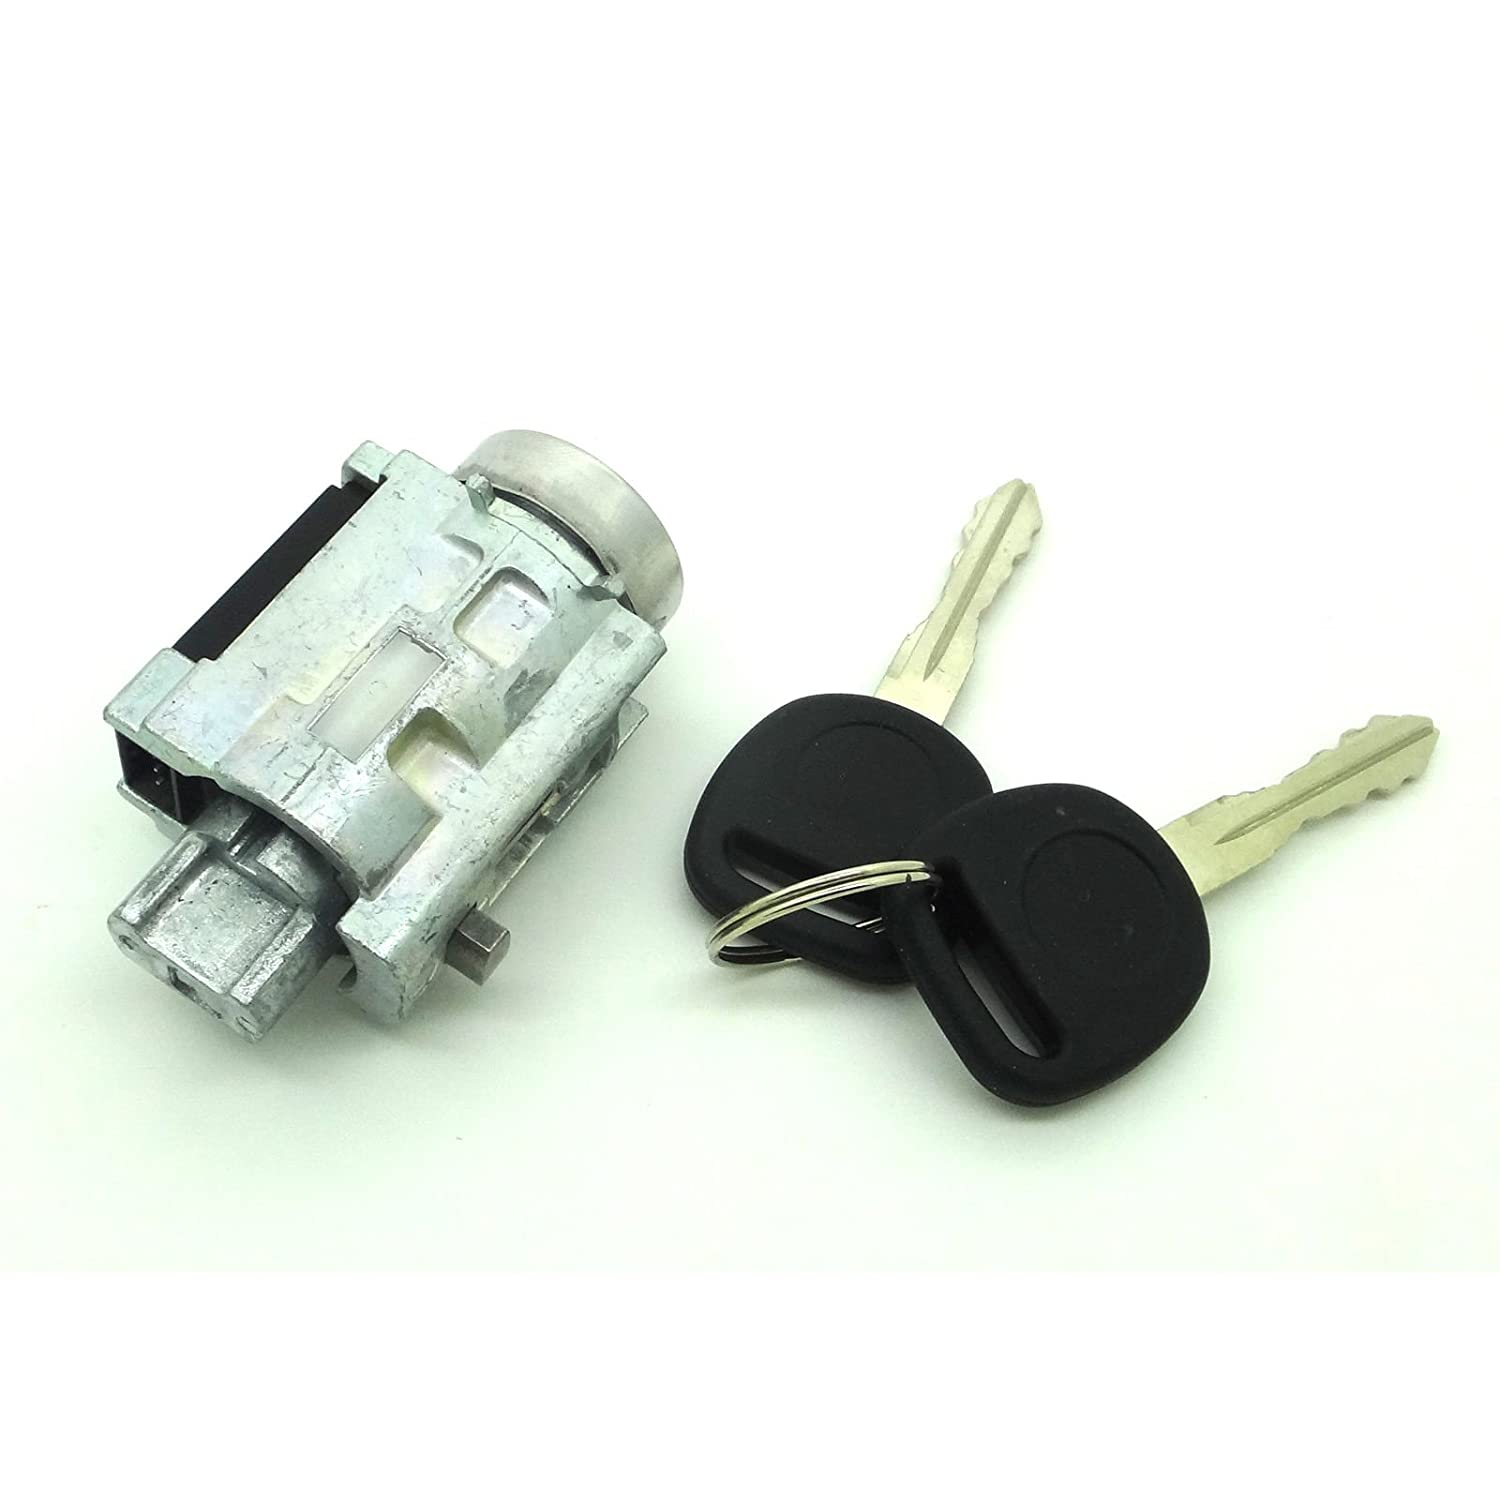 Ignition Lock Cylinder Assembly with Keys /& Passlock Chip for Chevy Classic Impala Malibu Monte Carlo /& Olds Alero Cutlass Intrigue /& Pontiac Grand Am Replace # 25832354 15822350 D1493F US286l 924-719